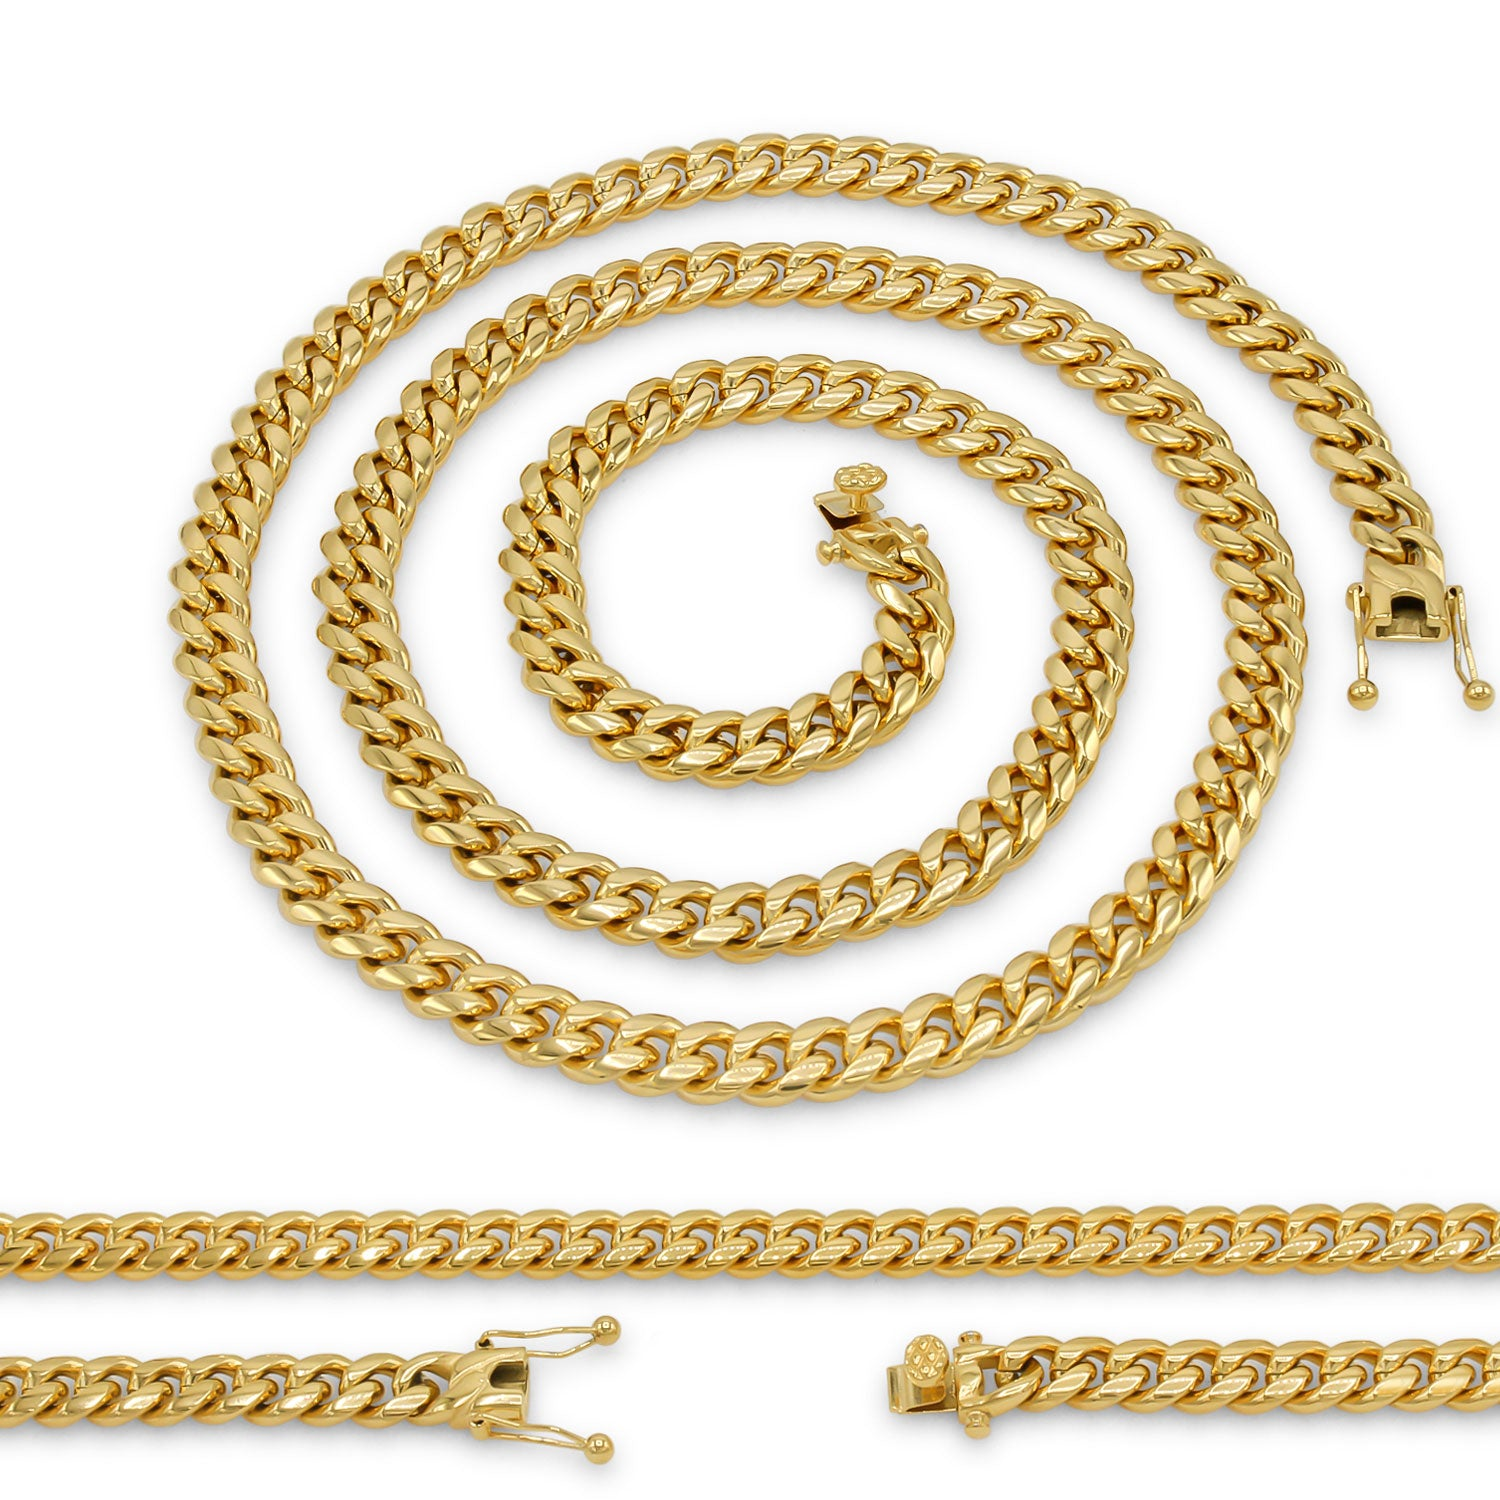 "Cuban Link Chain 18K Gold Plated Curb Necklace 30"" Stainless Steel"